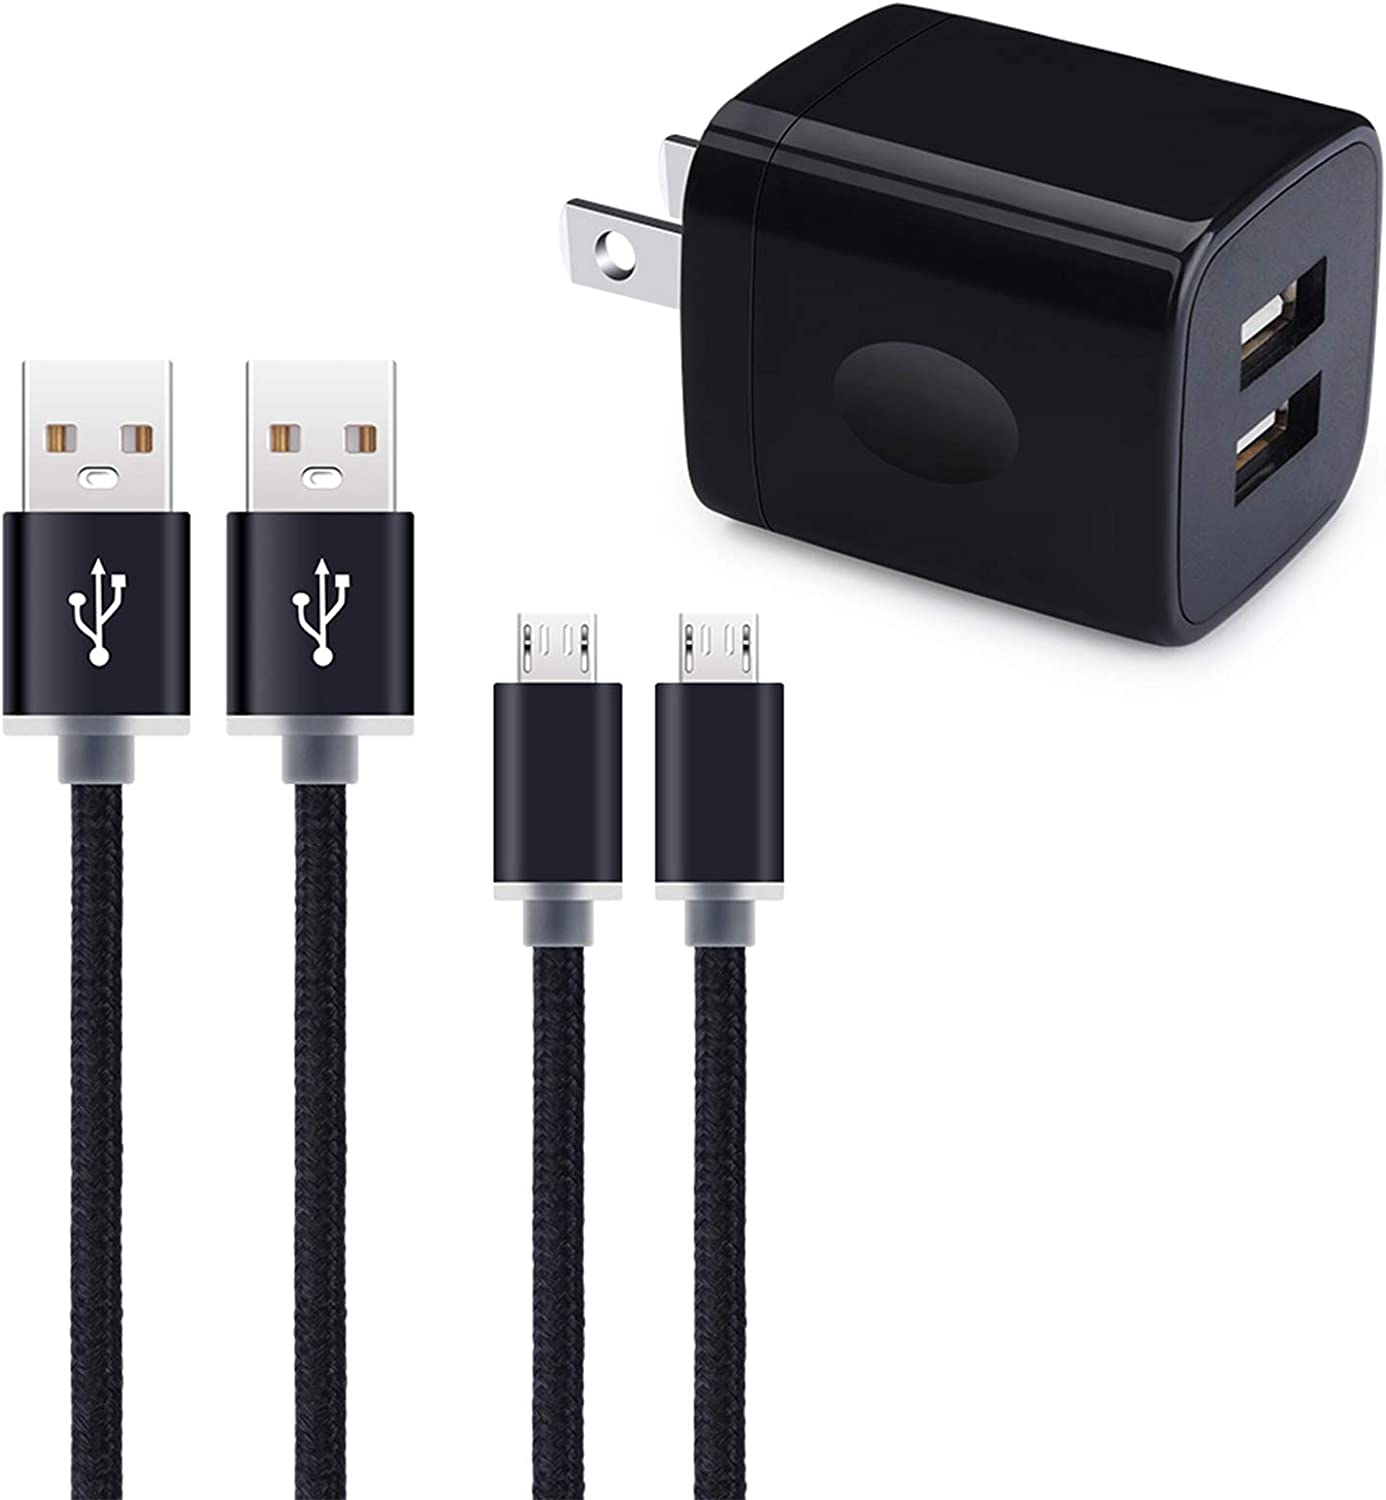 Micro USB Wall Charger, Hootek Micro USB Cable 6ft Android Phone Cord with Dual Port USB Charger Plug Charging Block for Samsung Galaxy S7 S6 J8 J7 J6 J5, LG K50 K40 K30 K20, Stylo 3 2, Moto E6s E5 G5